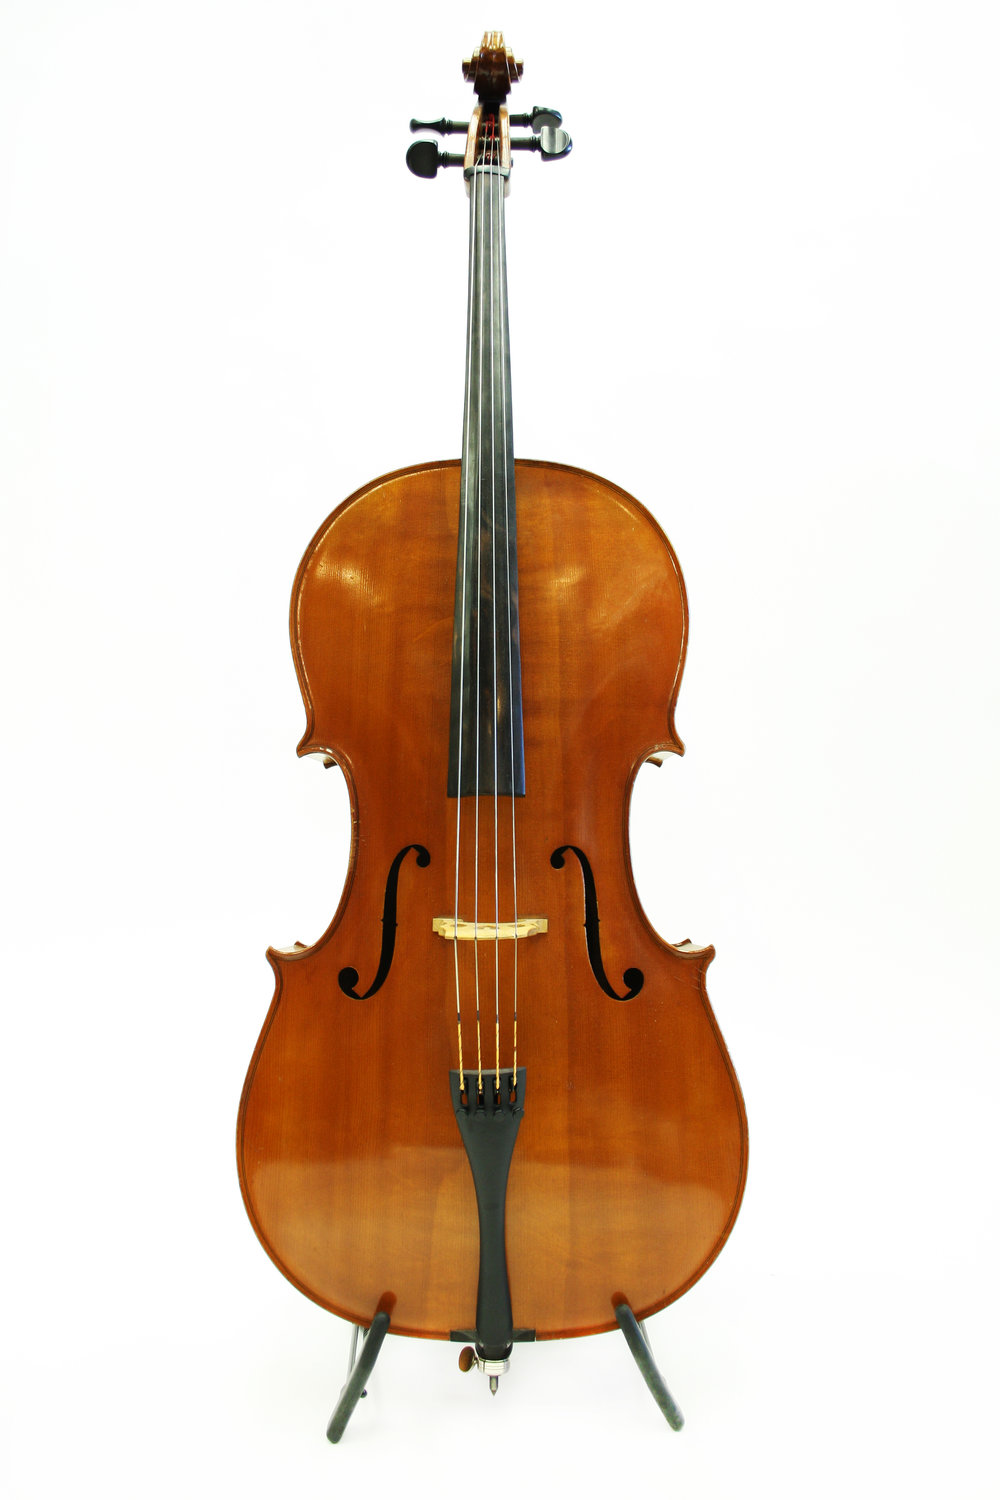 Max Hoyer 1968 Cello - $6999